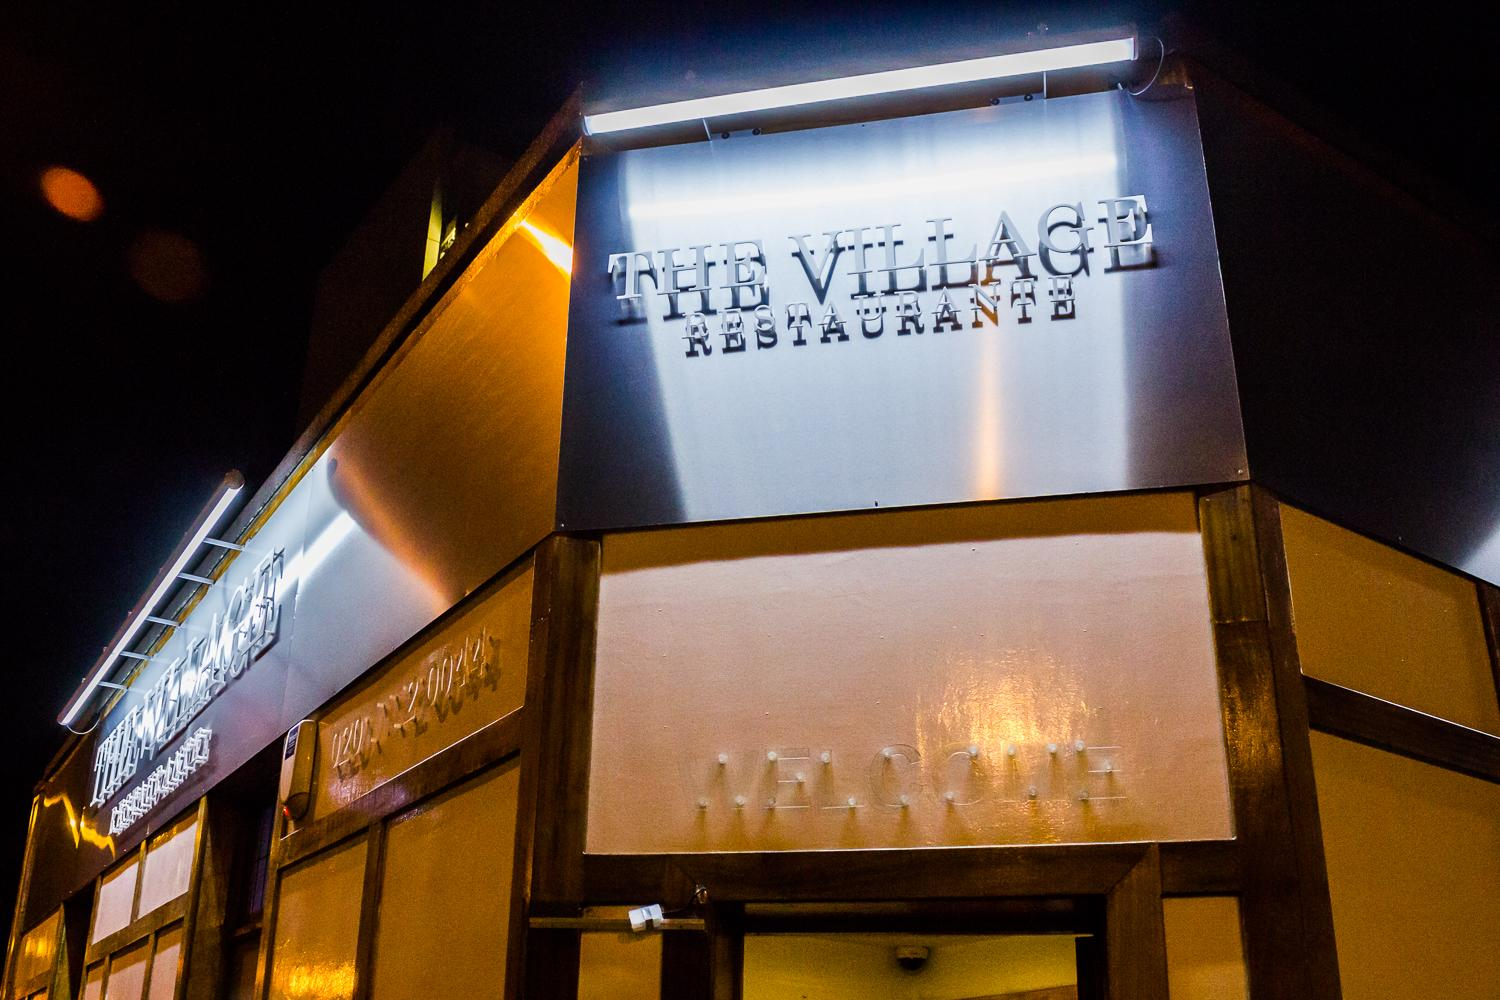 The Village Restaurante - London